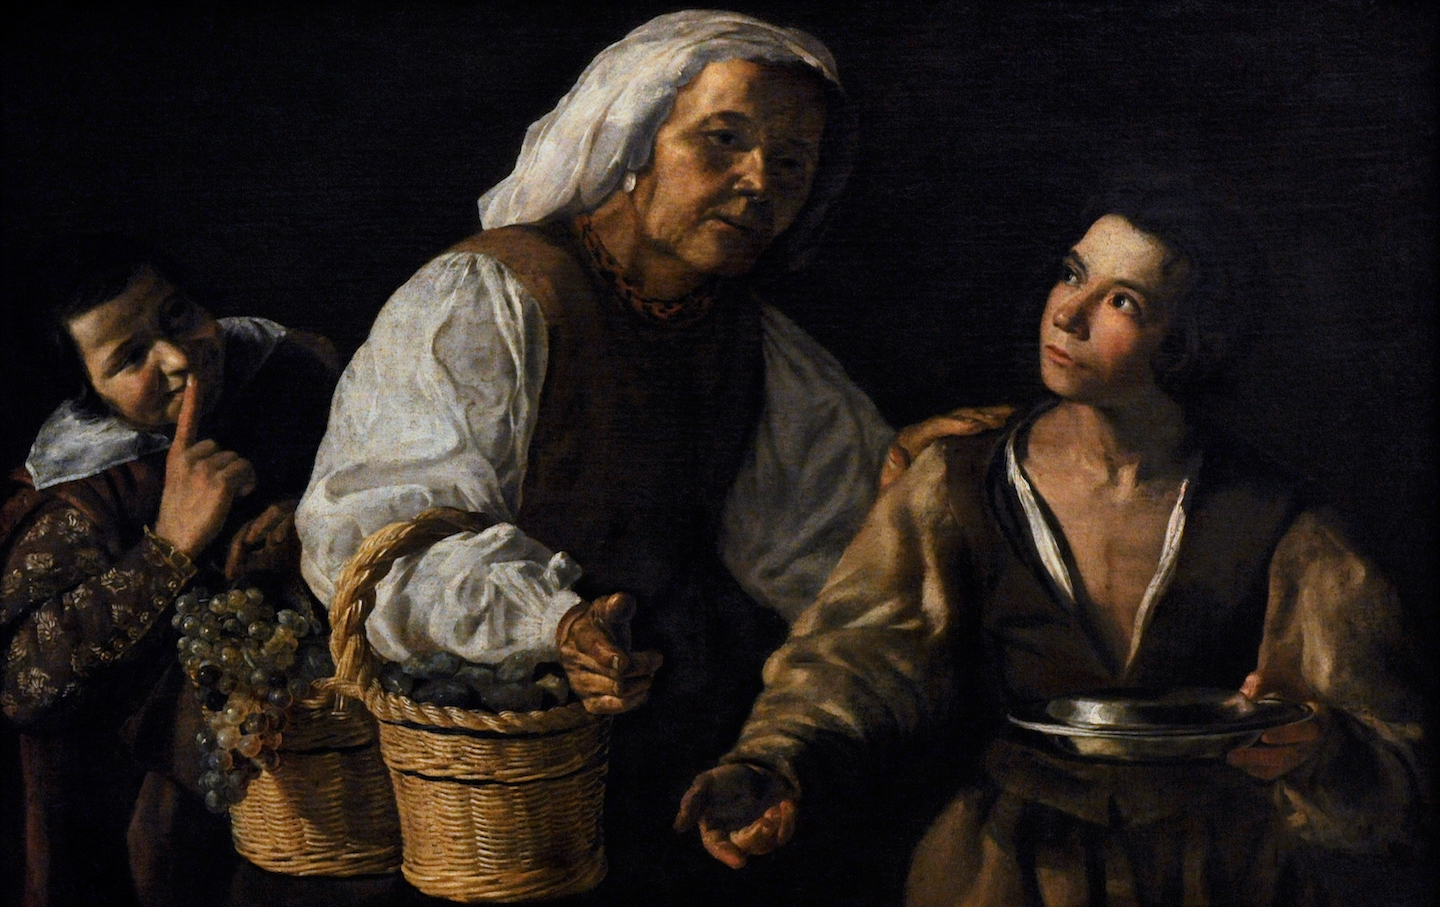 The Old Fruitseller, 1600's by School of Diego Velazquez (1599-1660).